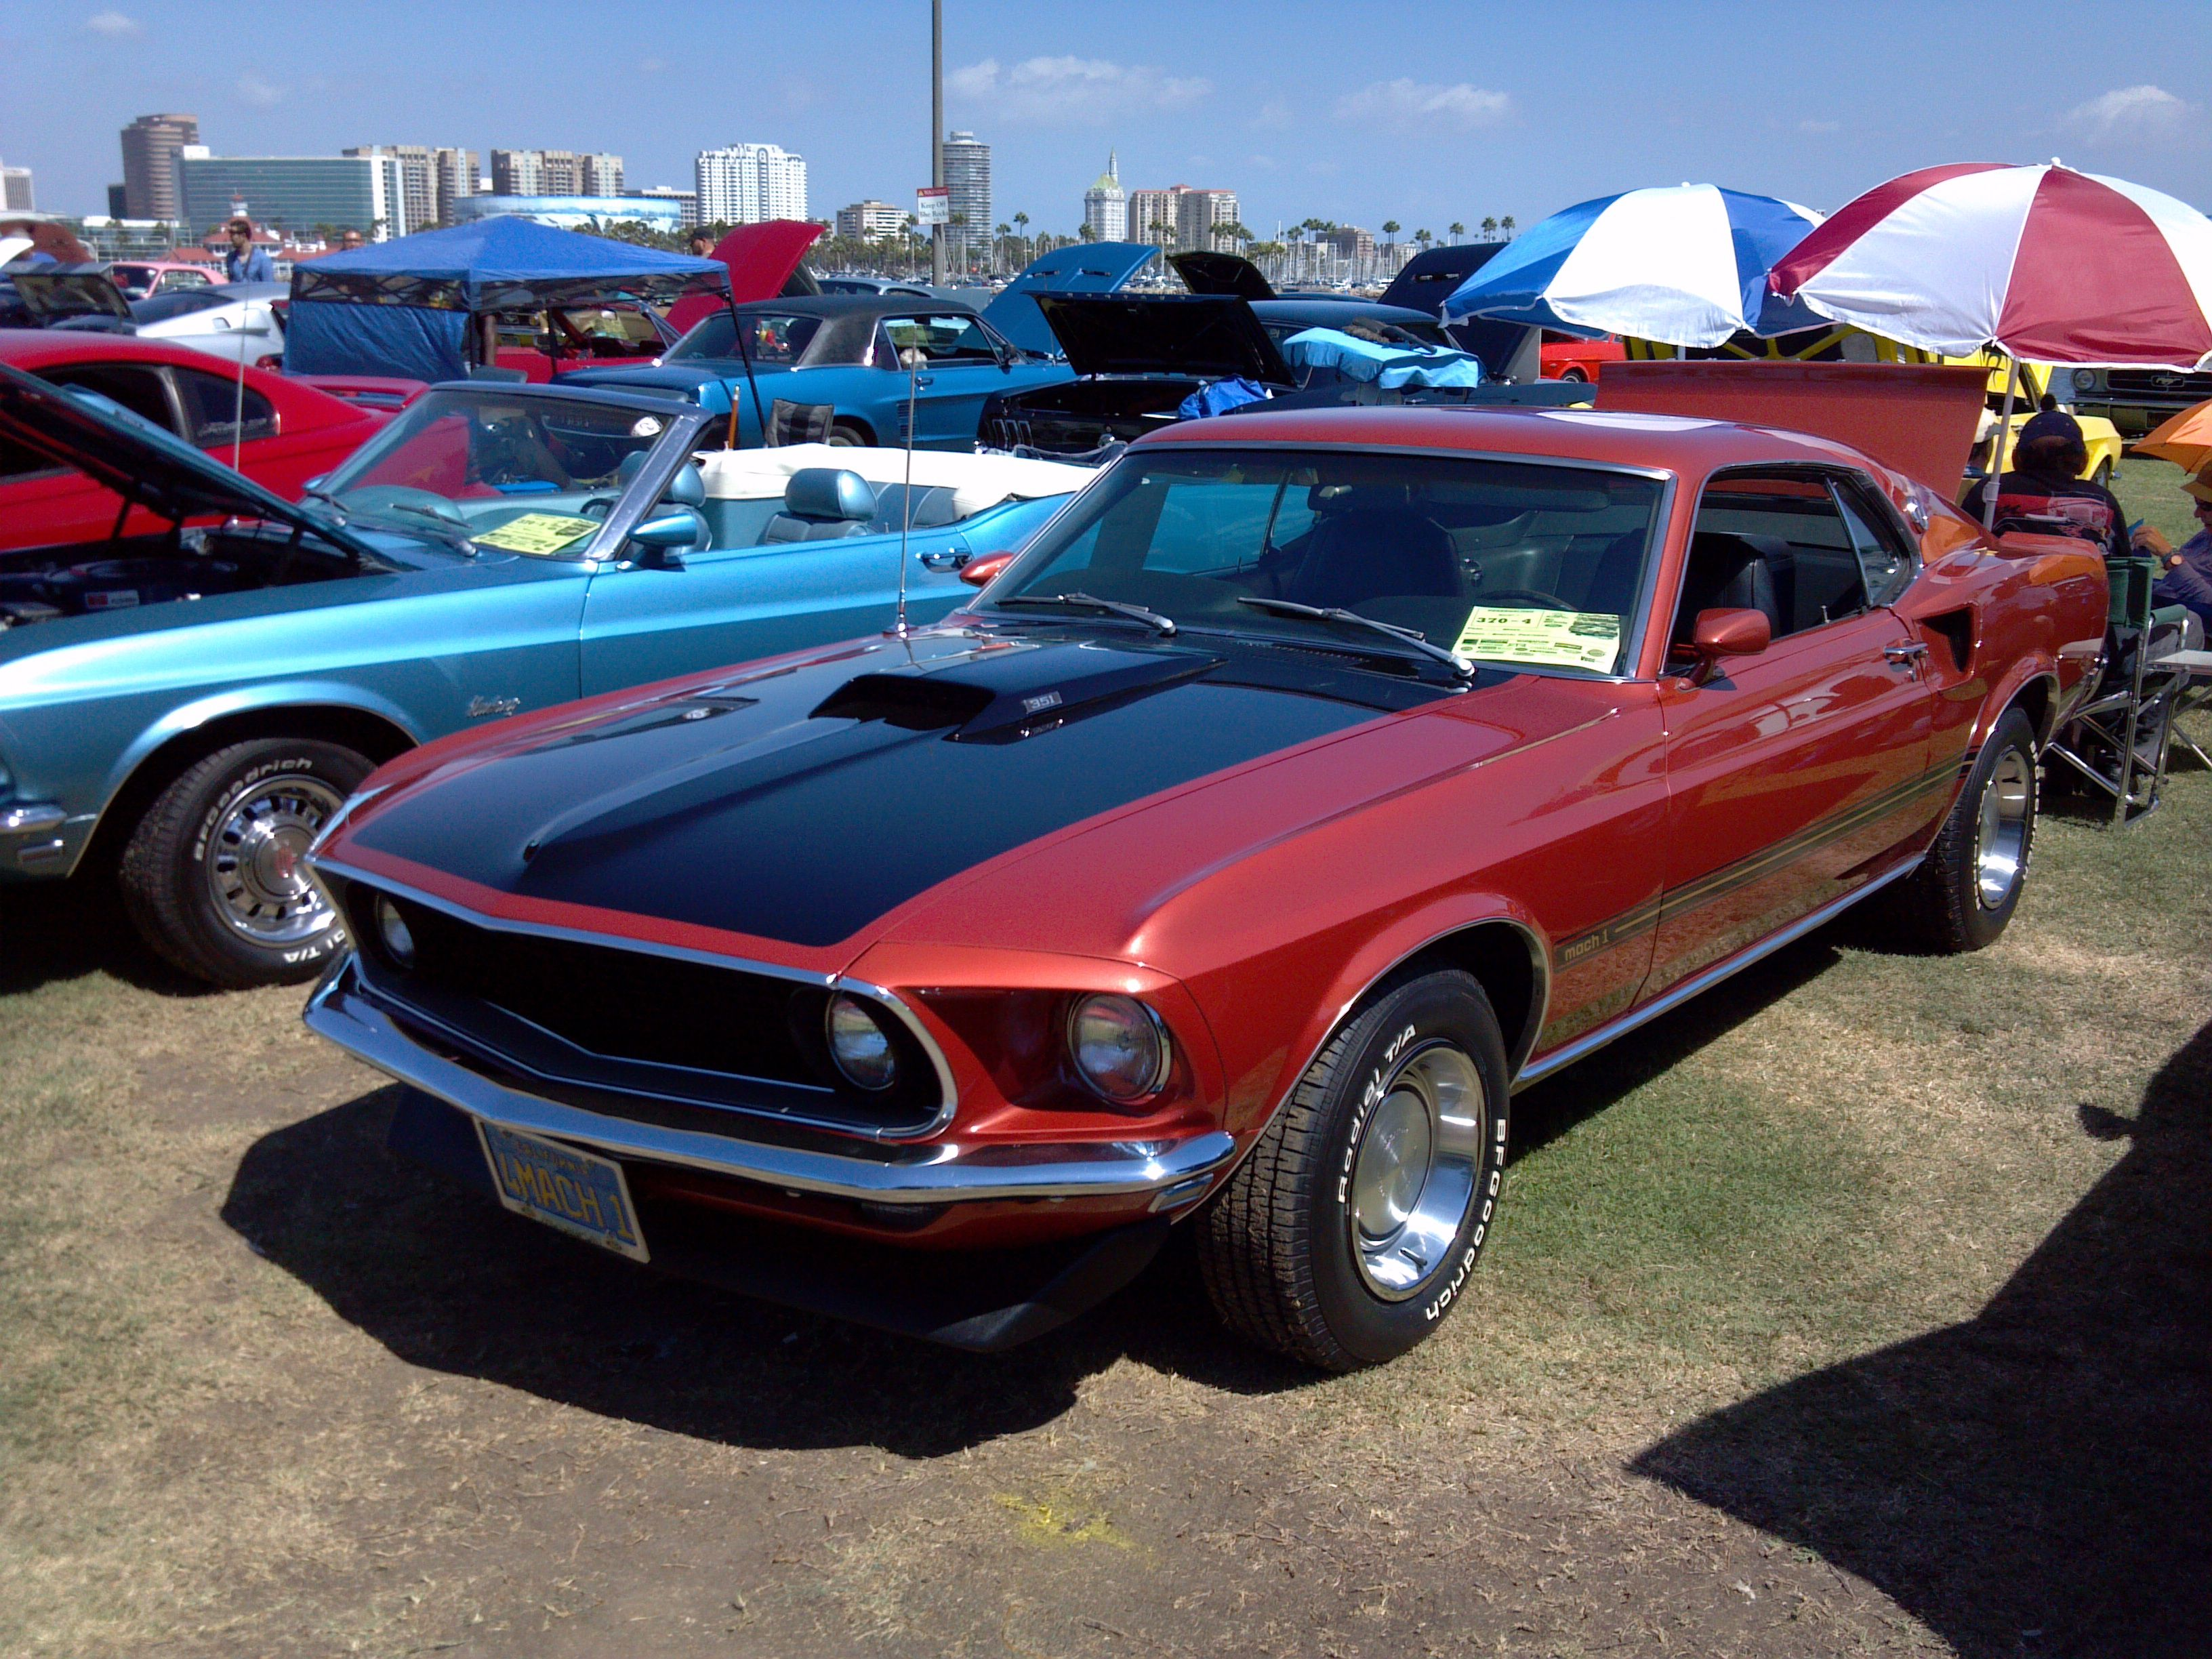 1969 Mach 1 In Indian Fire Red At Long Beach Mustang Show Socal